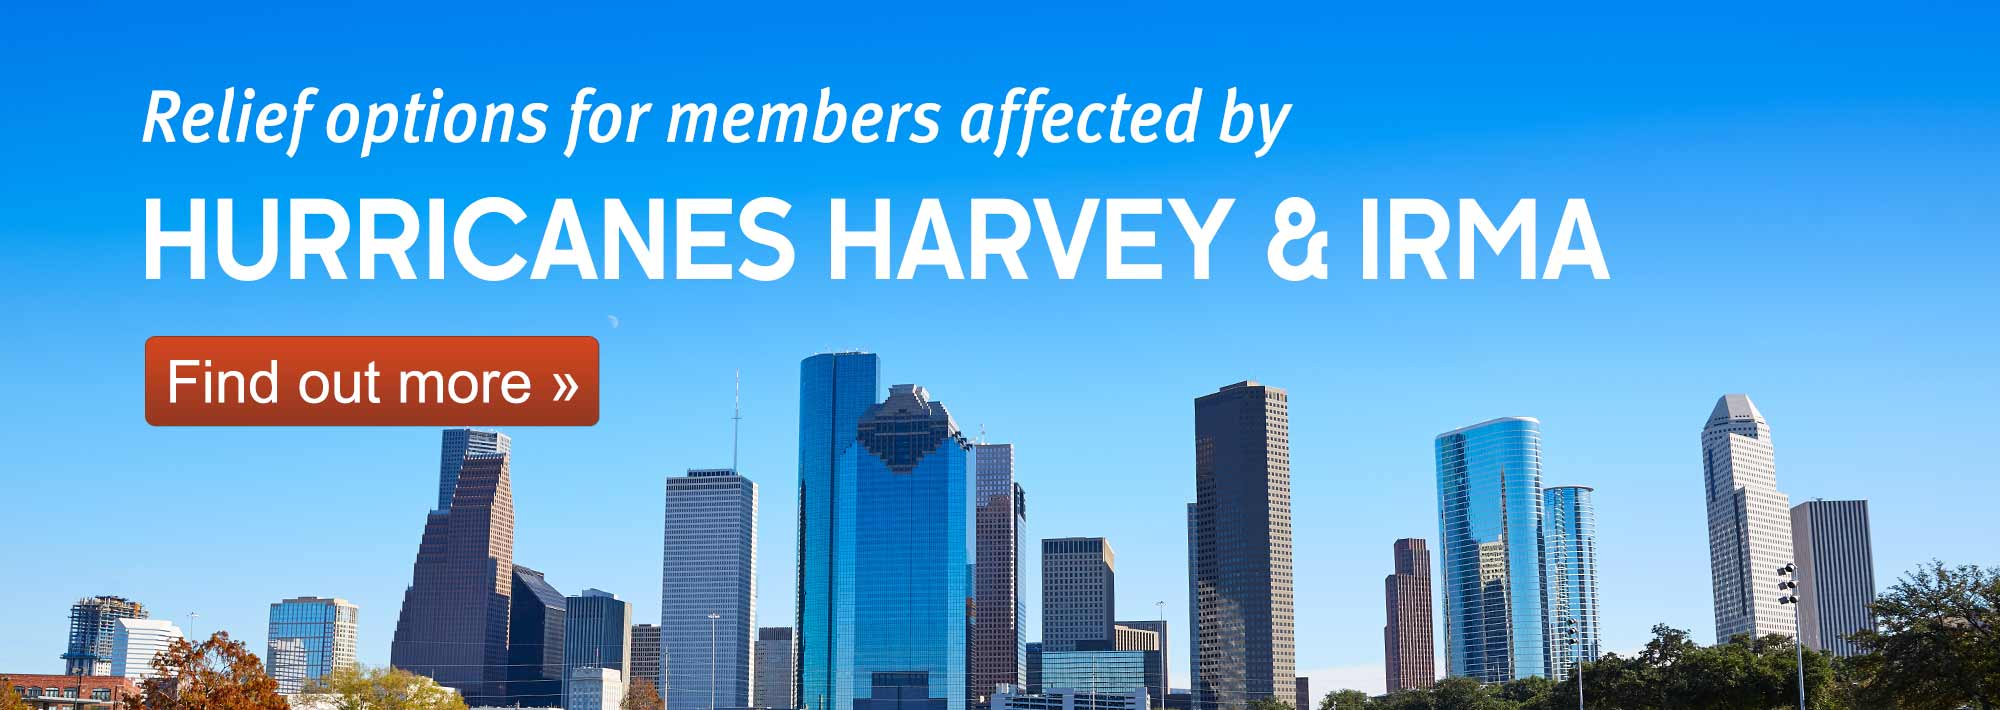 Relief options for members affected by Hurricane Harvey. Find out more.